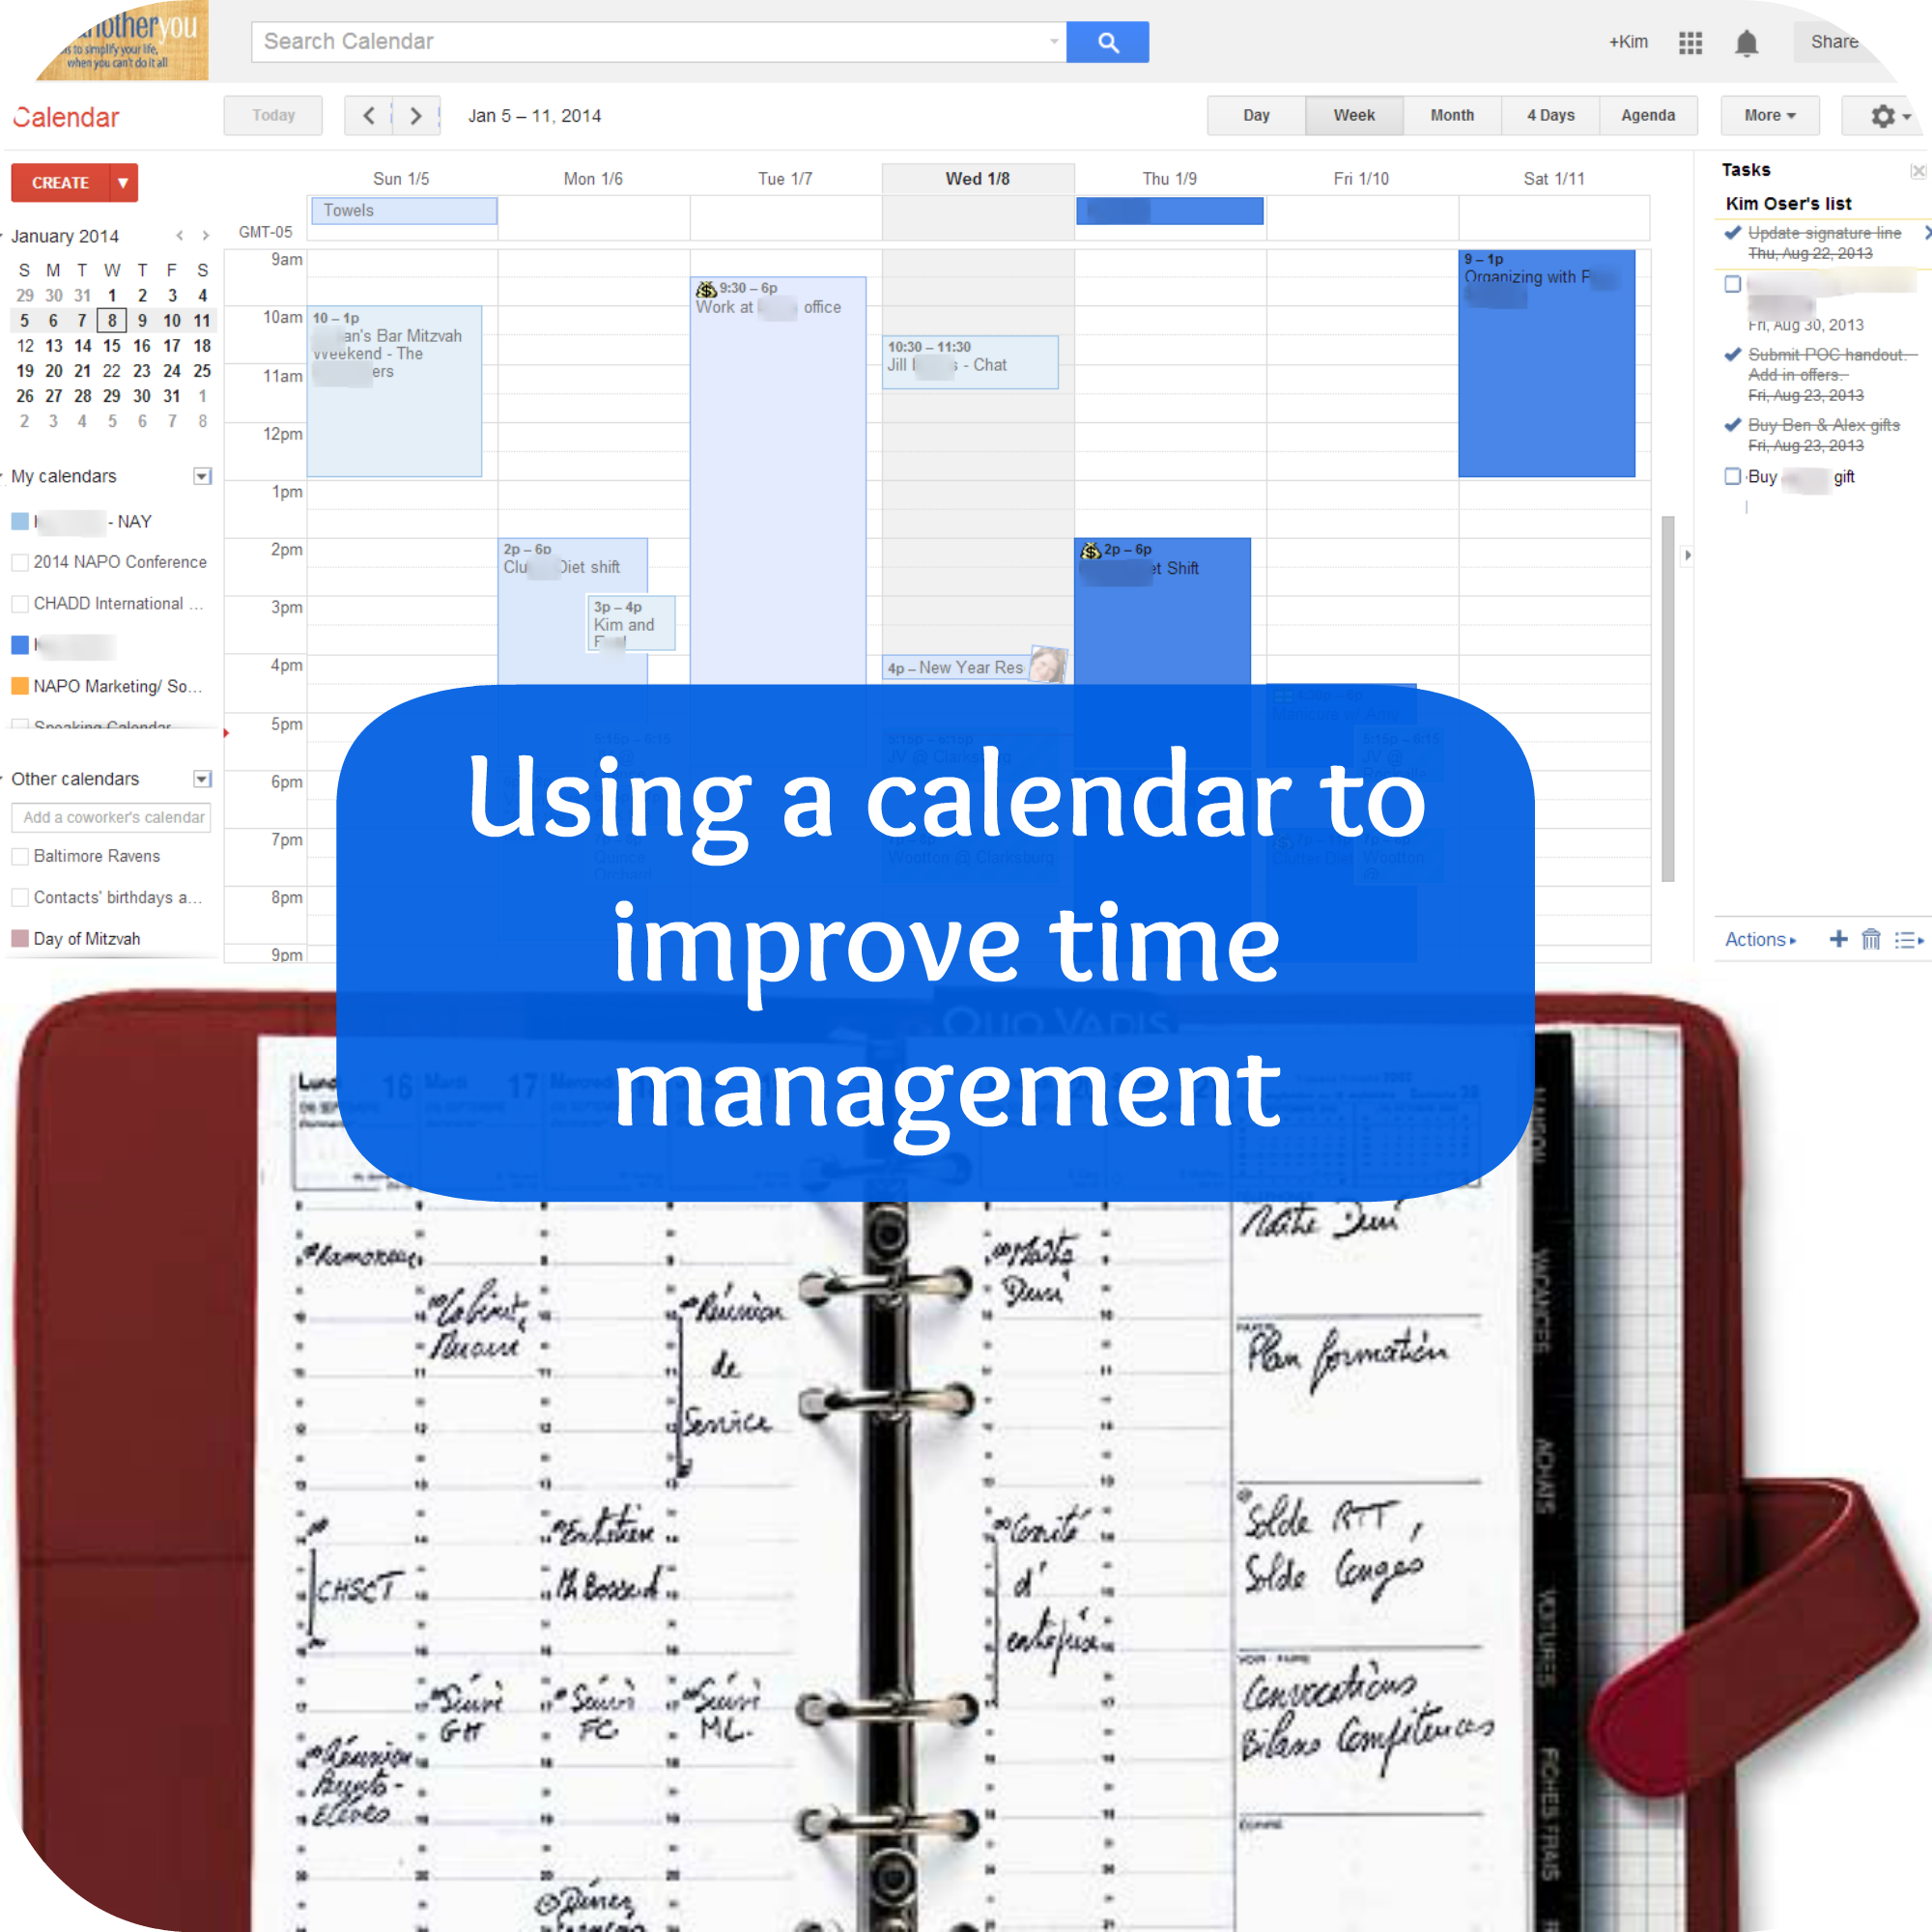 Using a calendar to improve time management